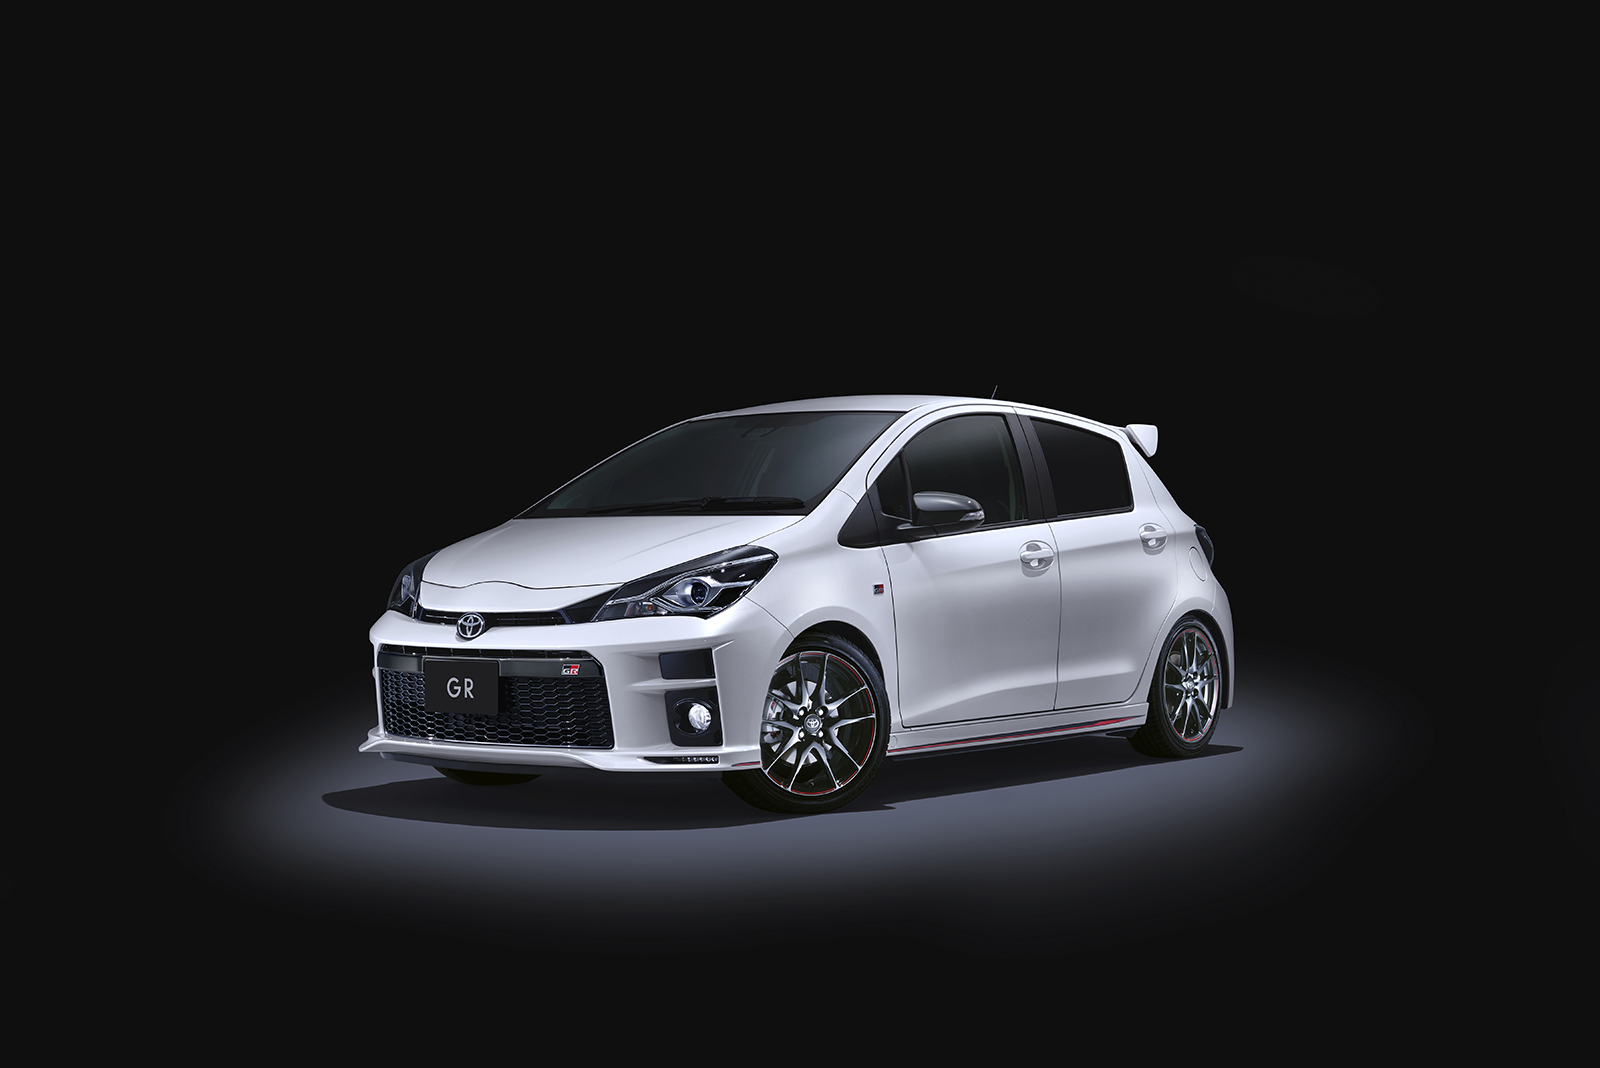 New Toyota Prius >> NEWS: Toyota launches new GR performance line | Japanese Nostalgic Car